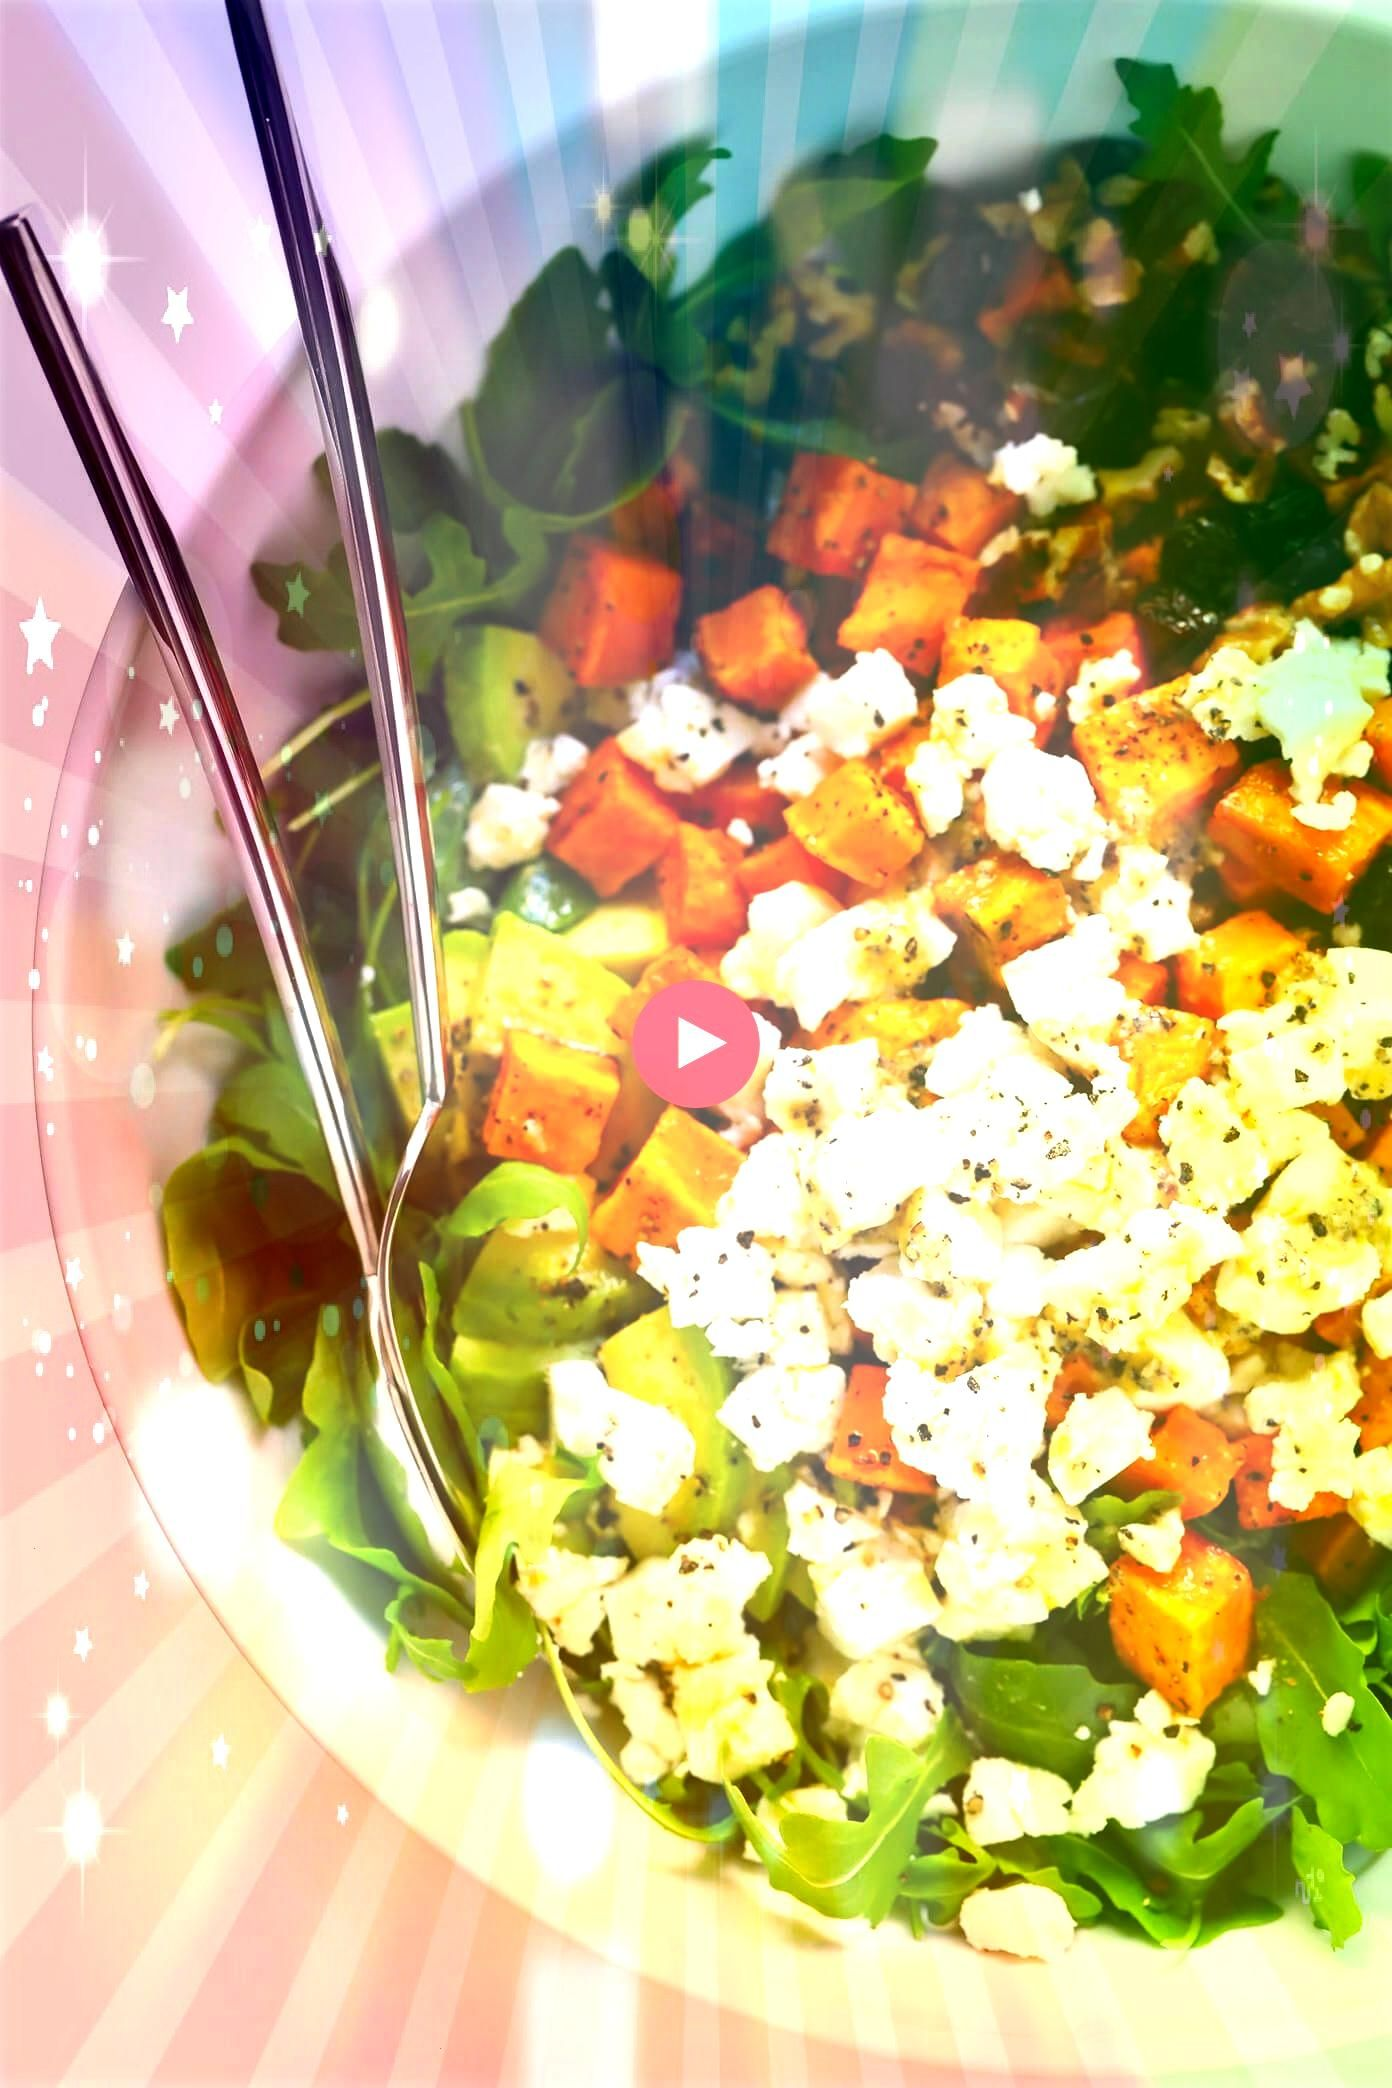 this FeelGood Fall Salad Its made with roasted sweet potato avocado arugula goat cheese nuts dried cranberries and tossed with a simple lemon dressing Its the perfect hea...